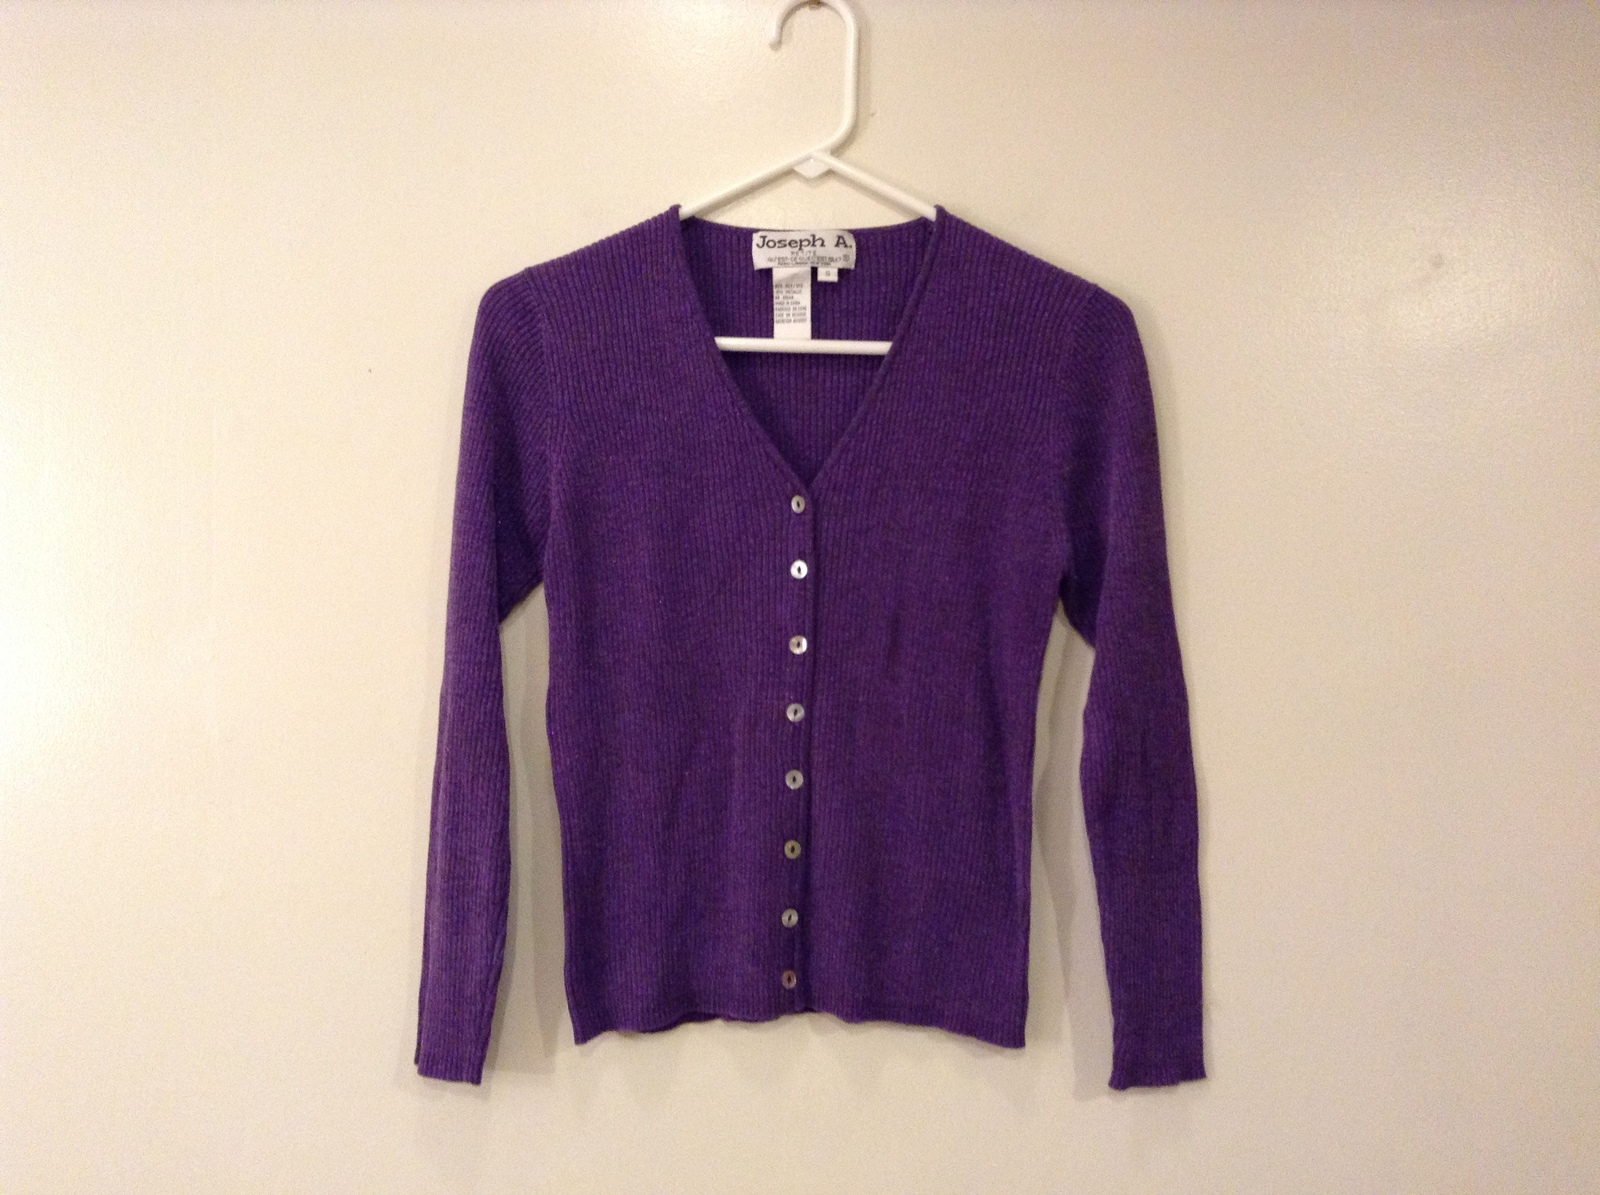 Joseph A. Petite Violet Metallic V-Neck Front Buttons Sweater Cardigan, size SP